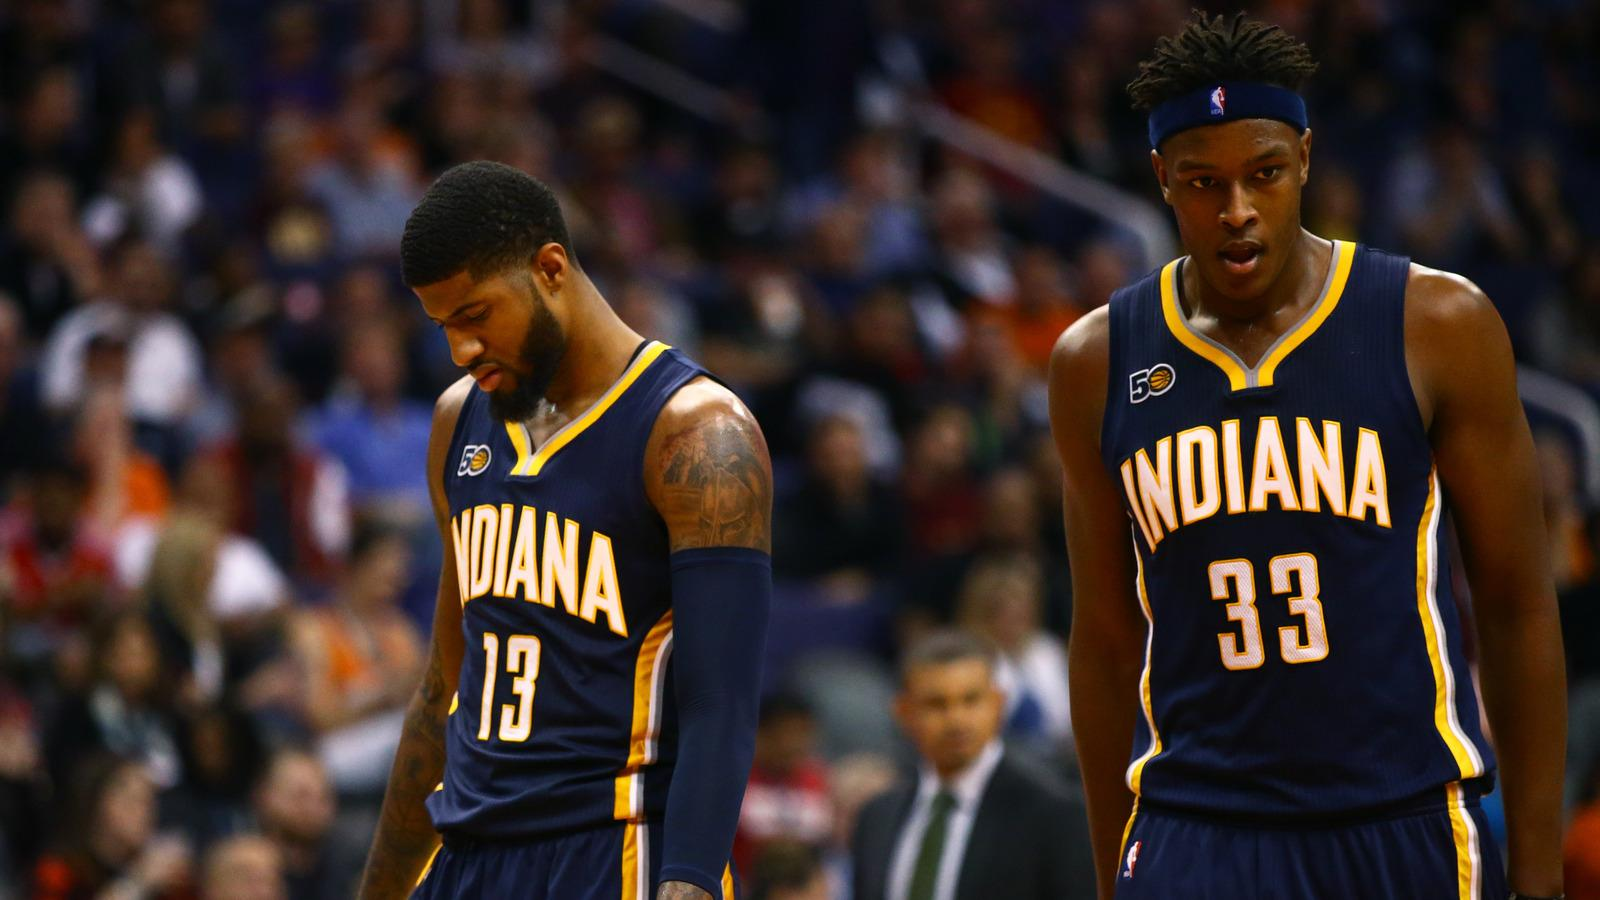 Myles Turner opens up about Paul George wanting to leave Pacers